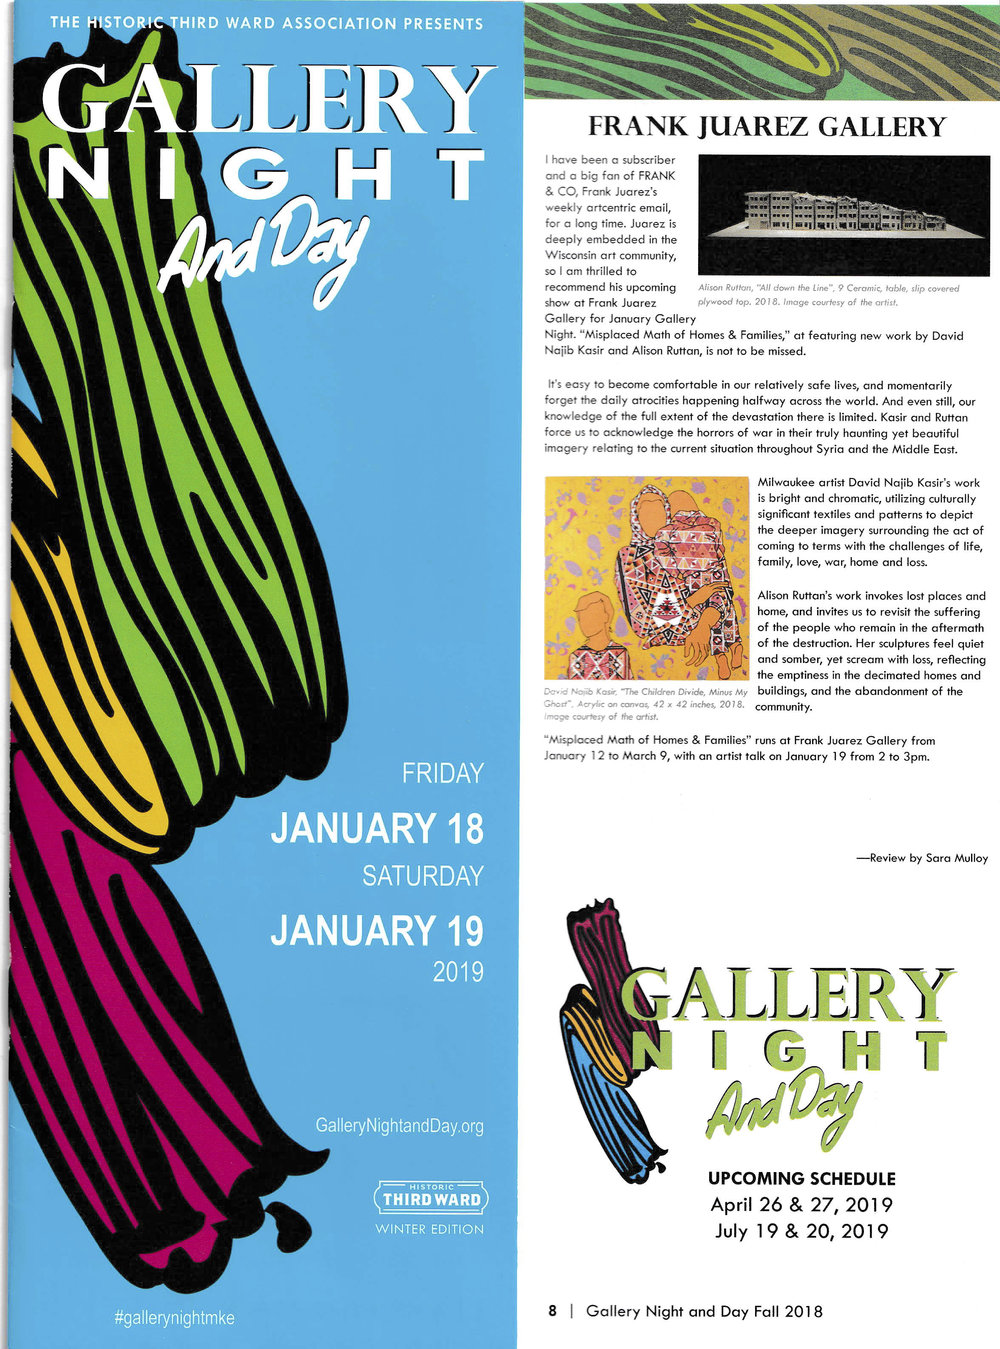 Jan2019_GalleryNight_review_Sara_Mulloy.jpg